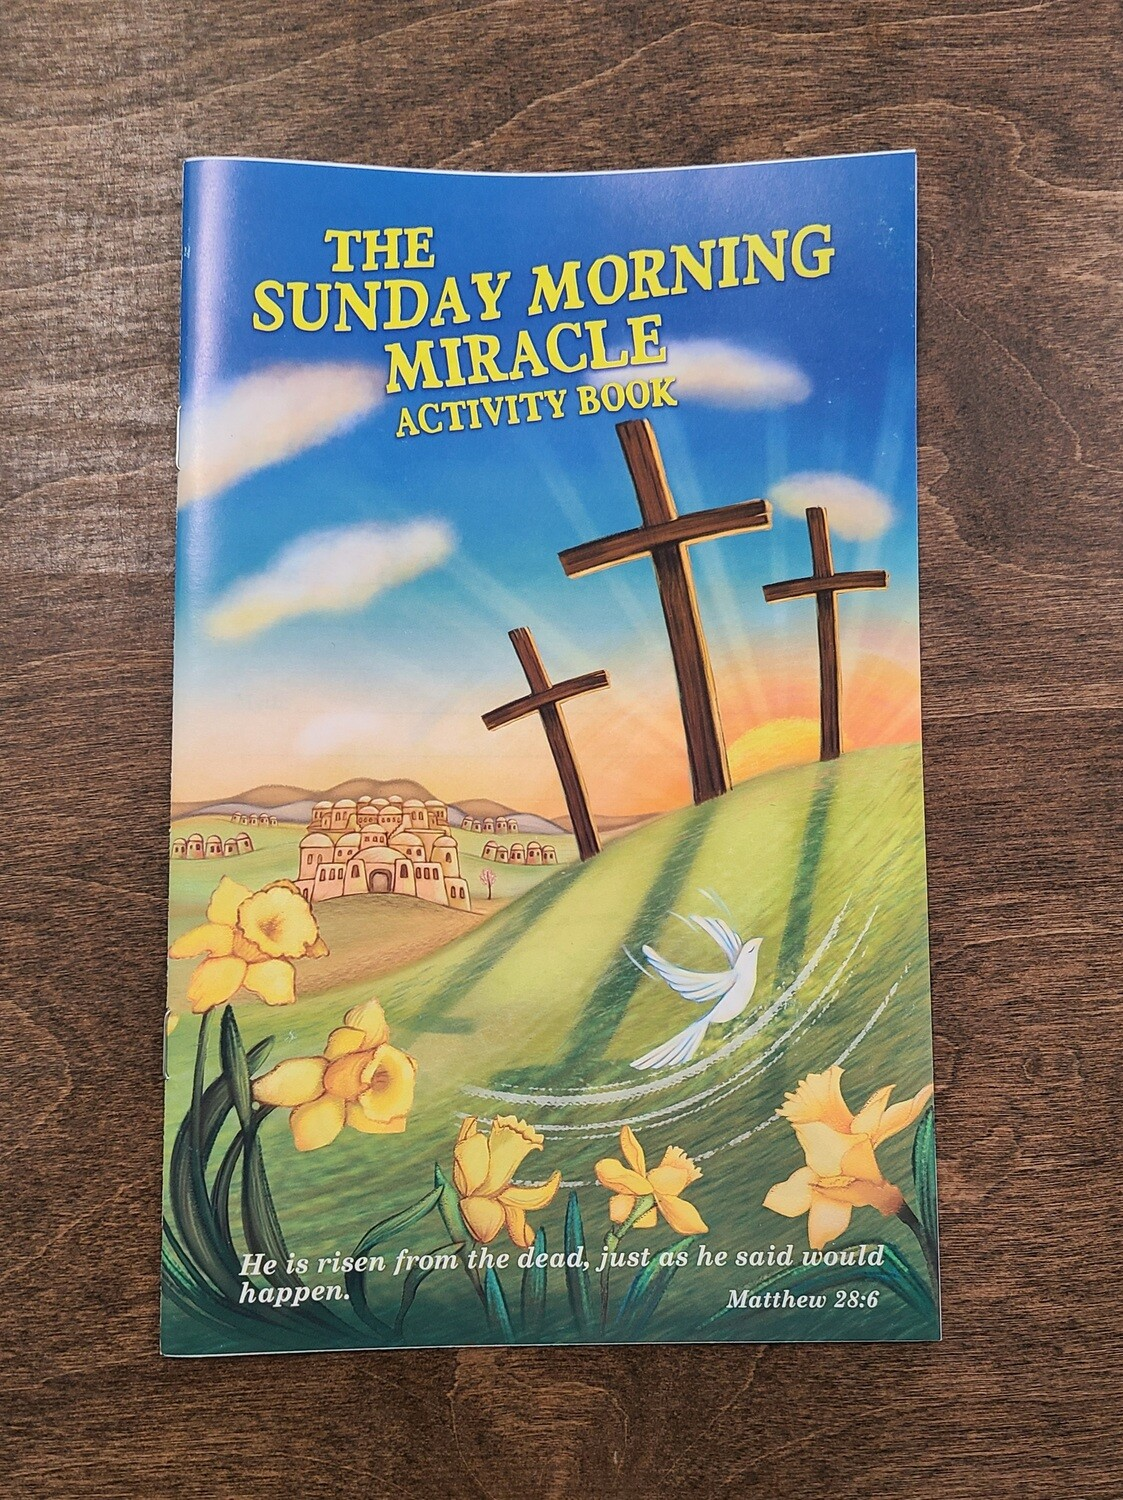 The Sunday Morning Miracle Activity Book